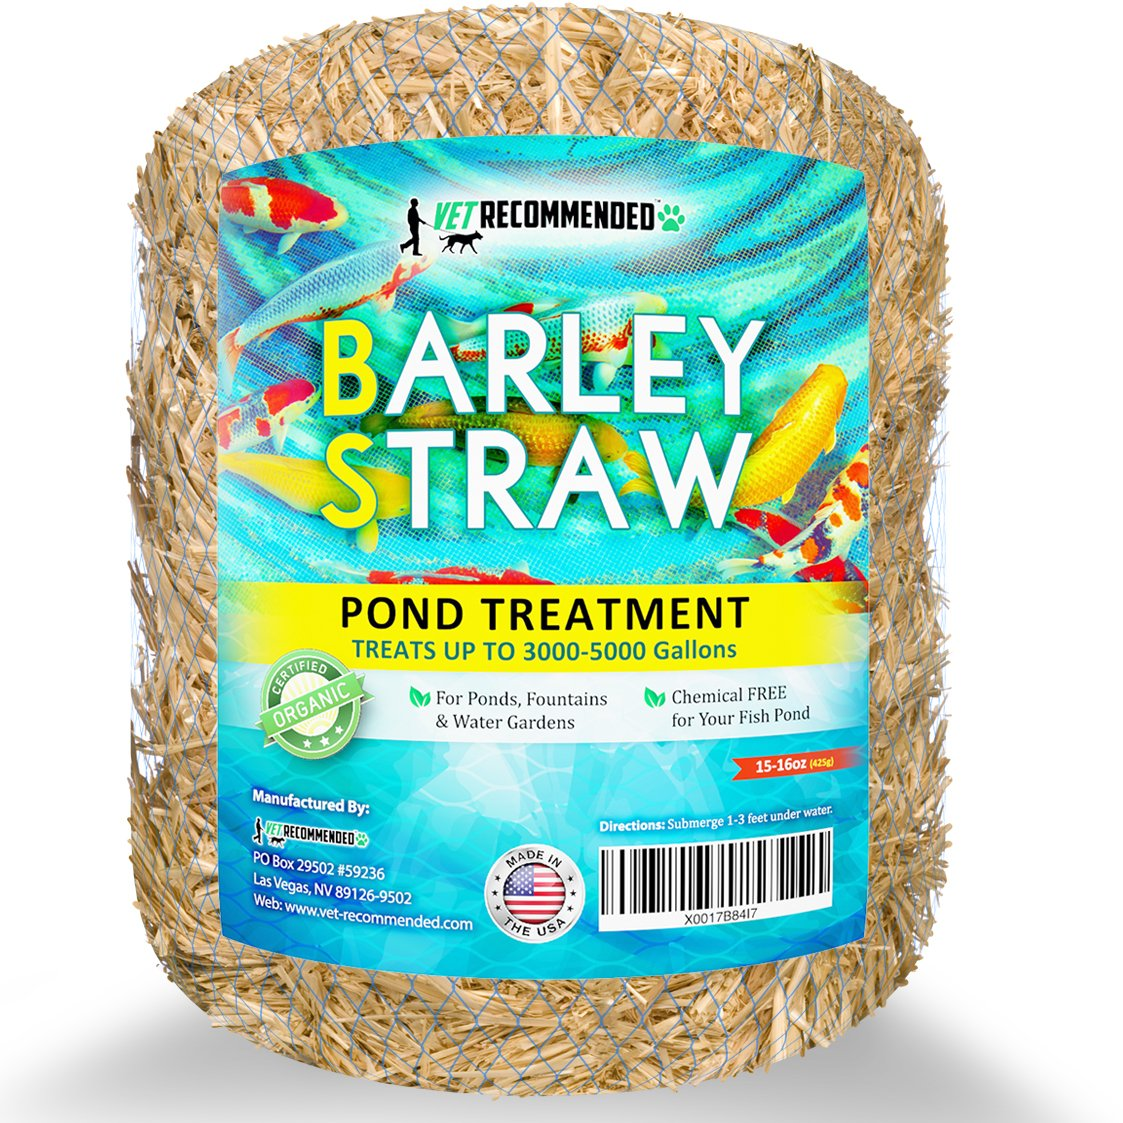 Vet Recommended Barley Straw for Fish Ponds - Certified Organic - Safe & Natural Pond Cleaner Made in USA (16oz)